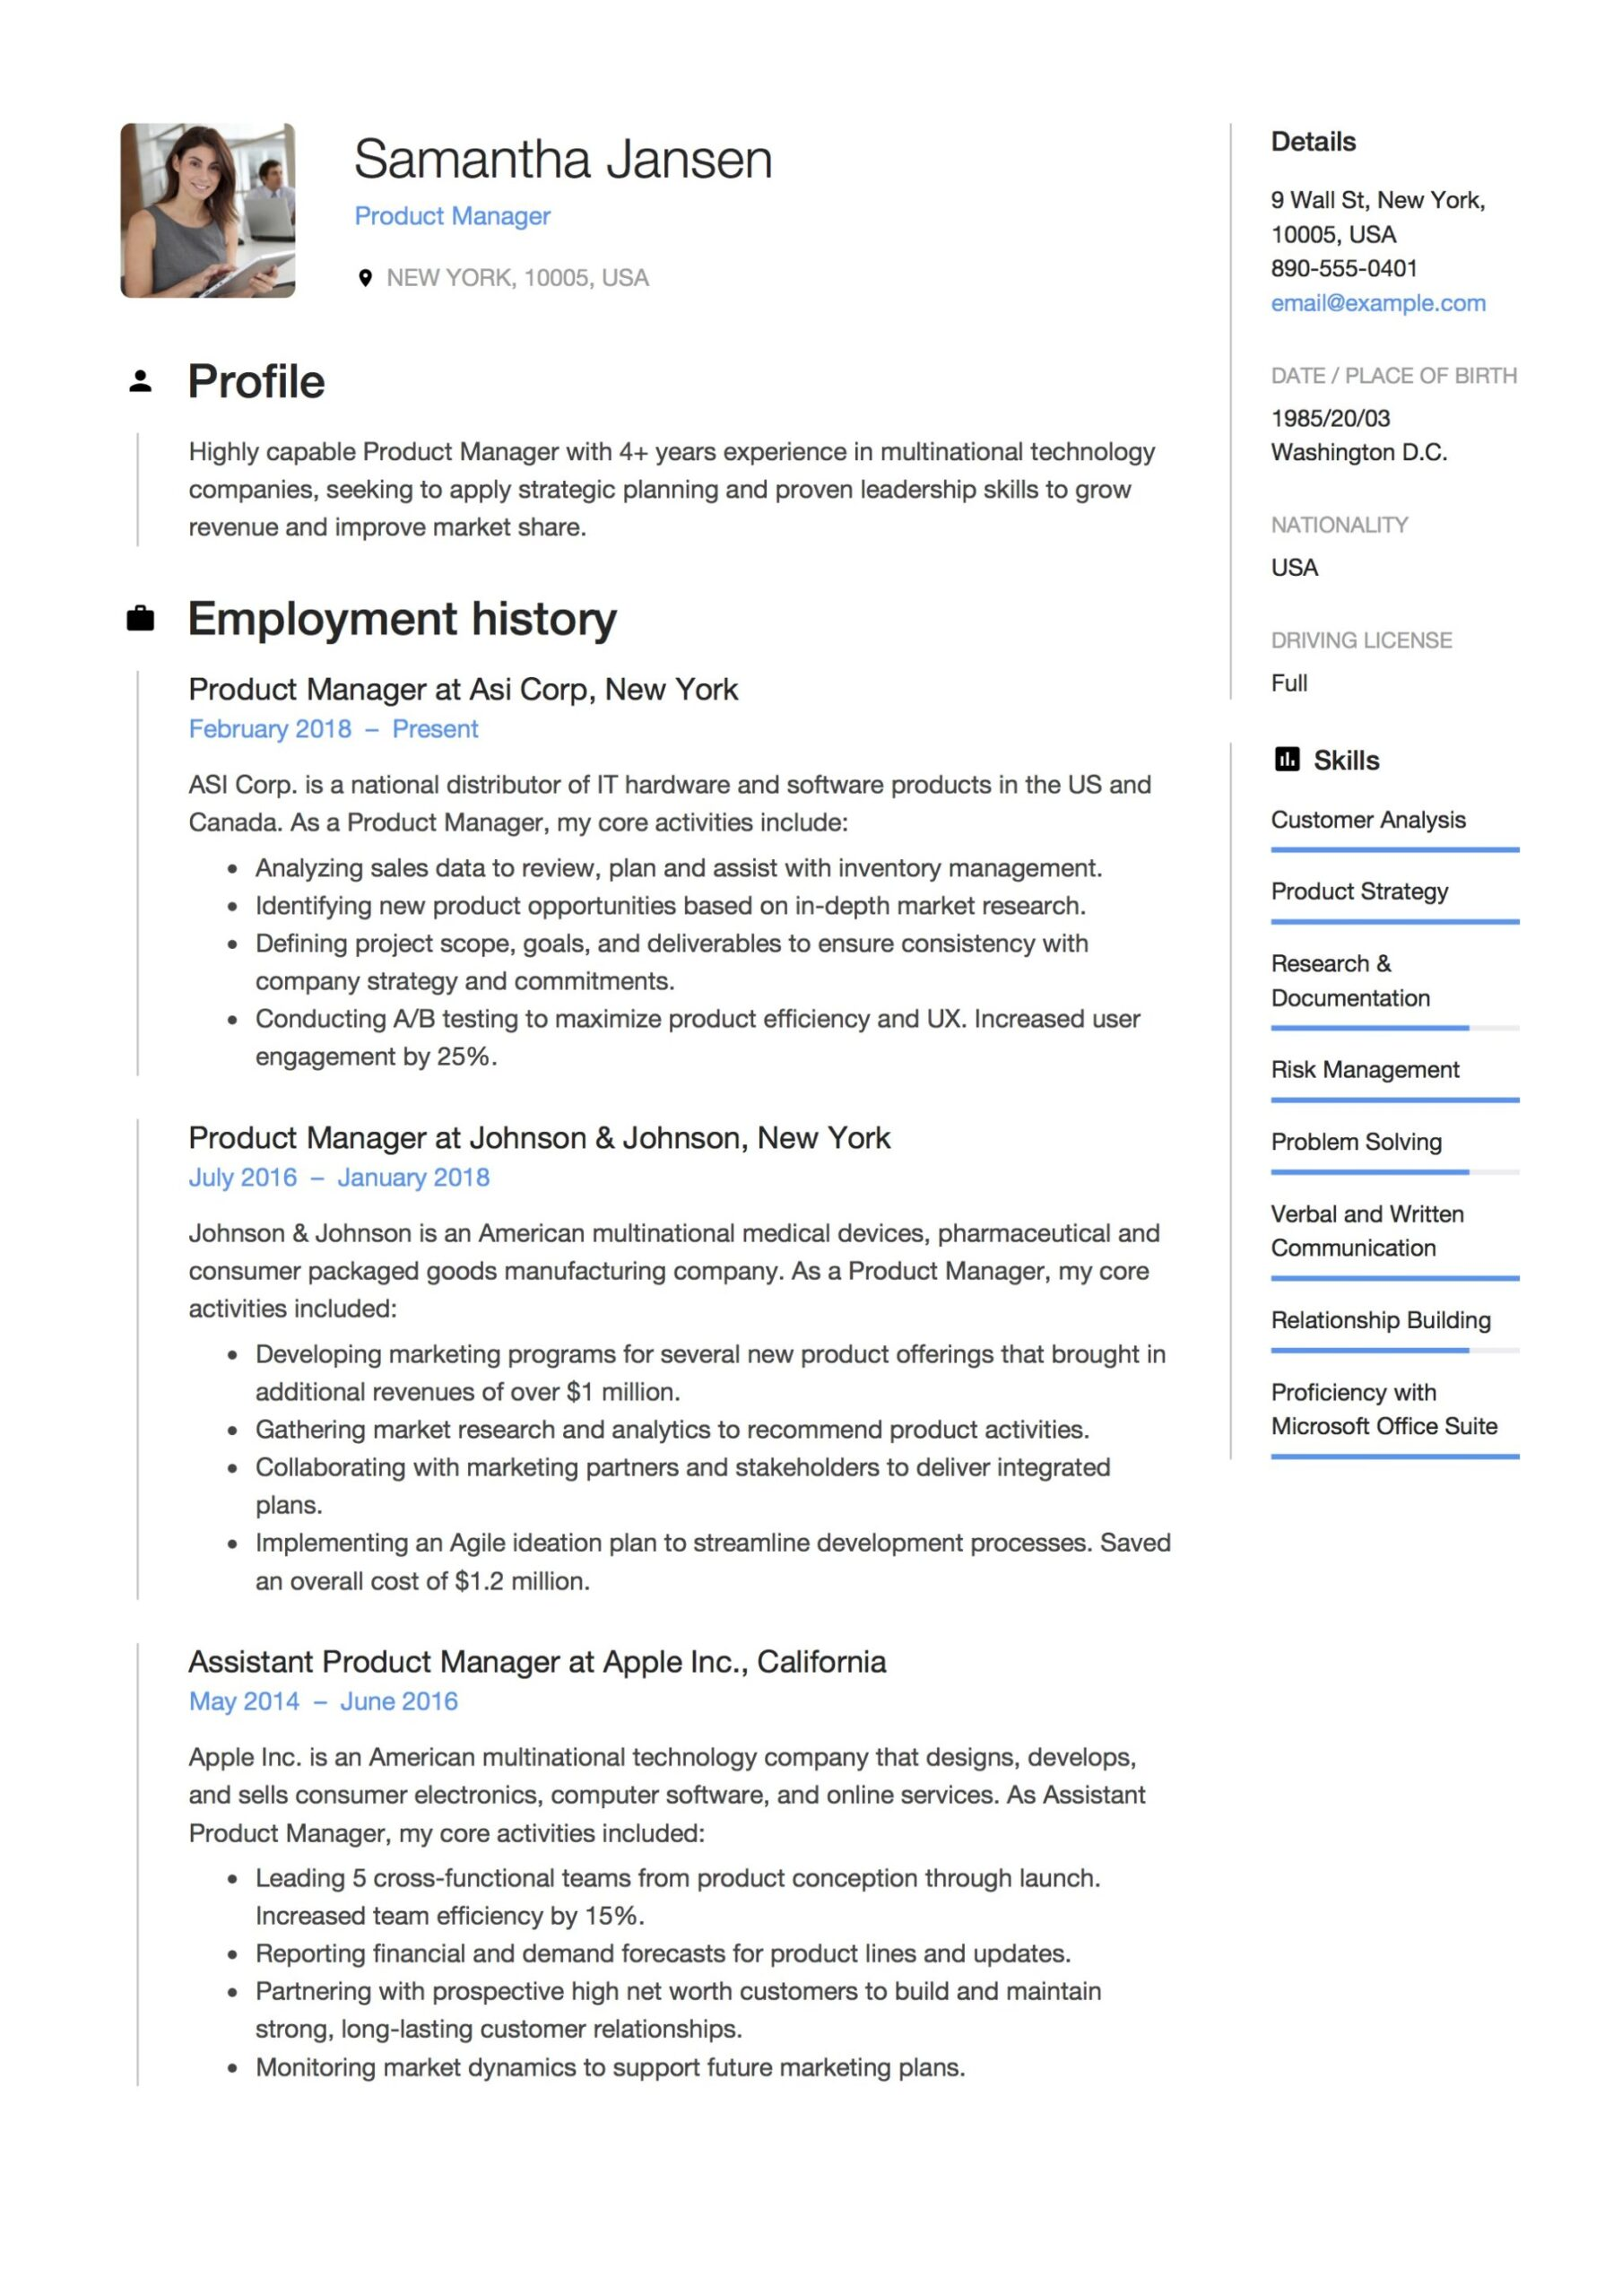 product manager resume guide samples pdf sample personal summary examples builder google Resume Product Manager Resume Sample